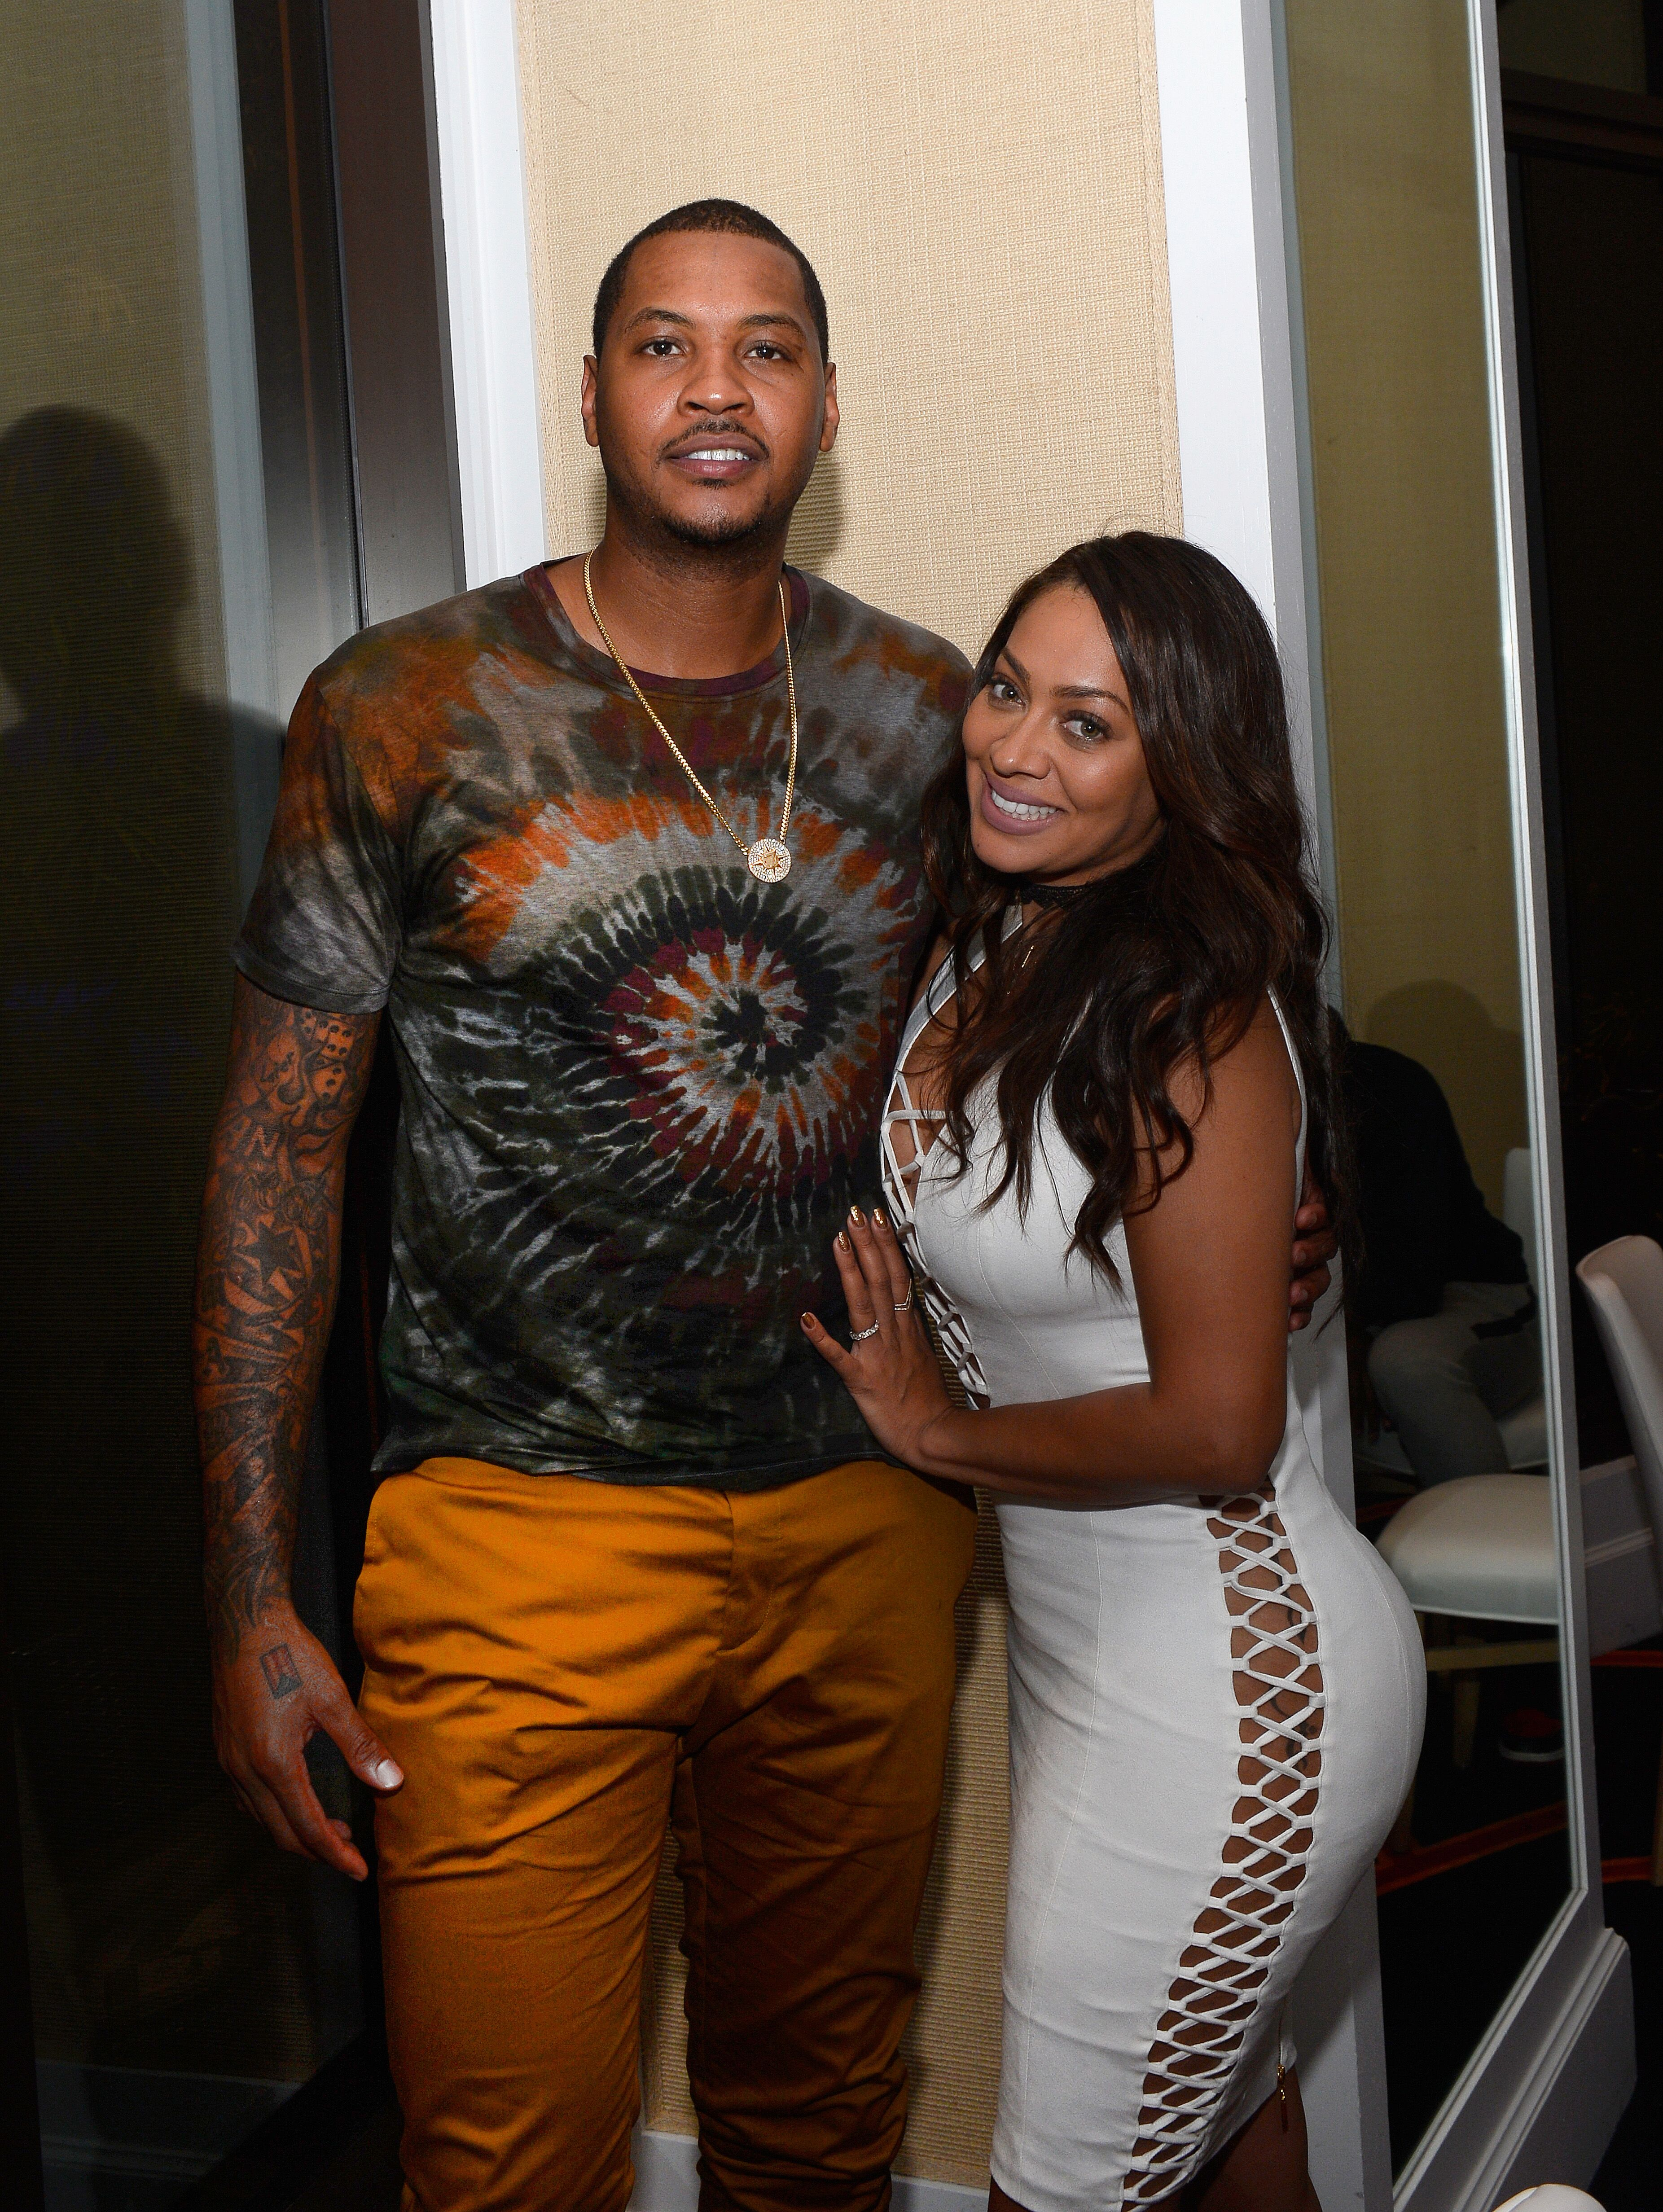 NBA player and 2016 USA Basketball Men's National Team member Carmelo Anthony (L) and his wife radio/television personality La La Anthony attend as he hosts the Team USA welcome dinner at Lakeside at Wynn Las Vegas on July 17, 2016 | Photo: Getty Images